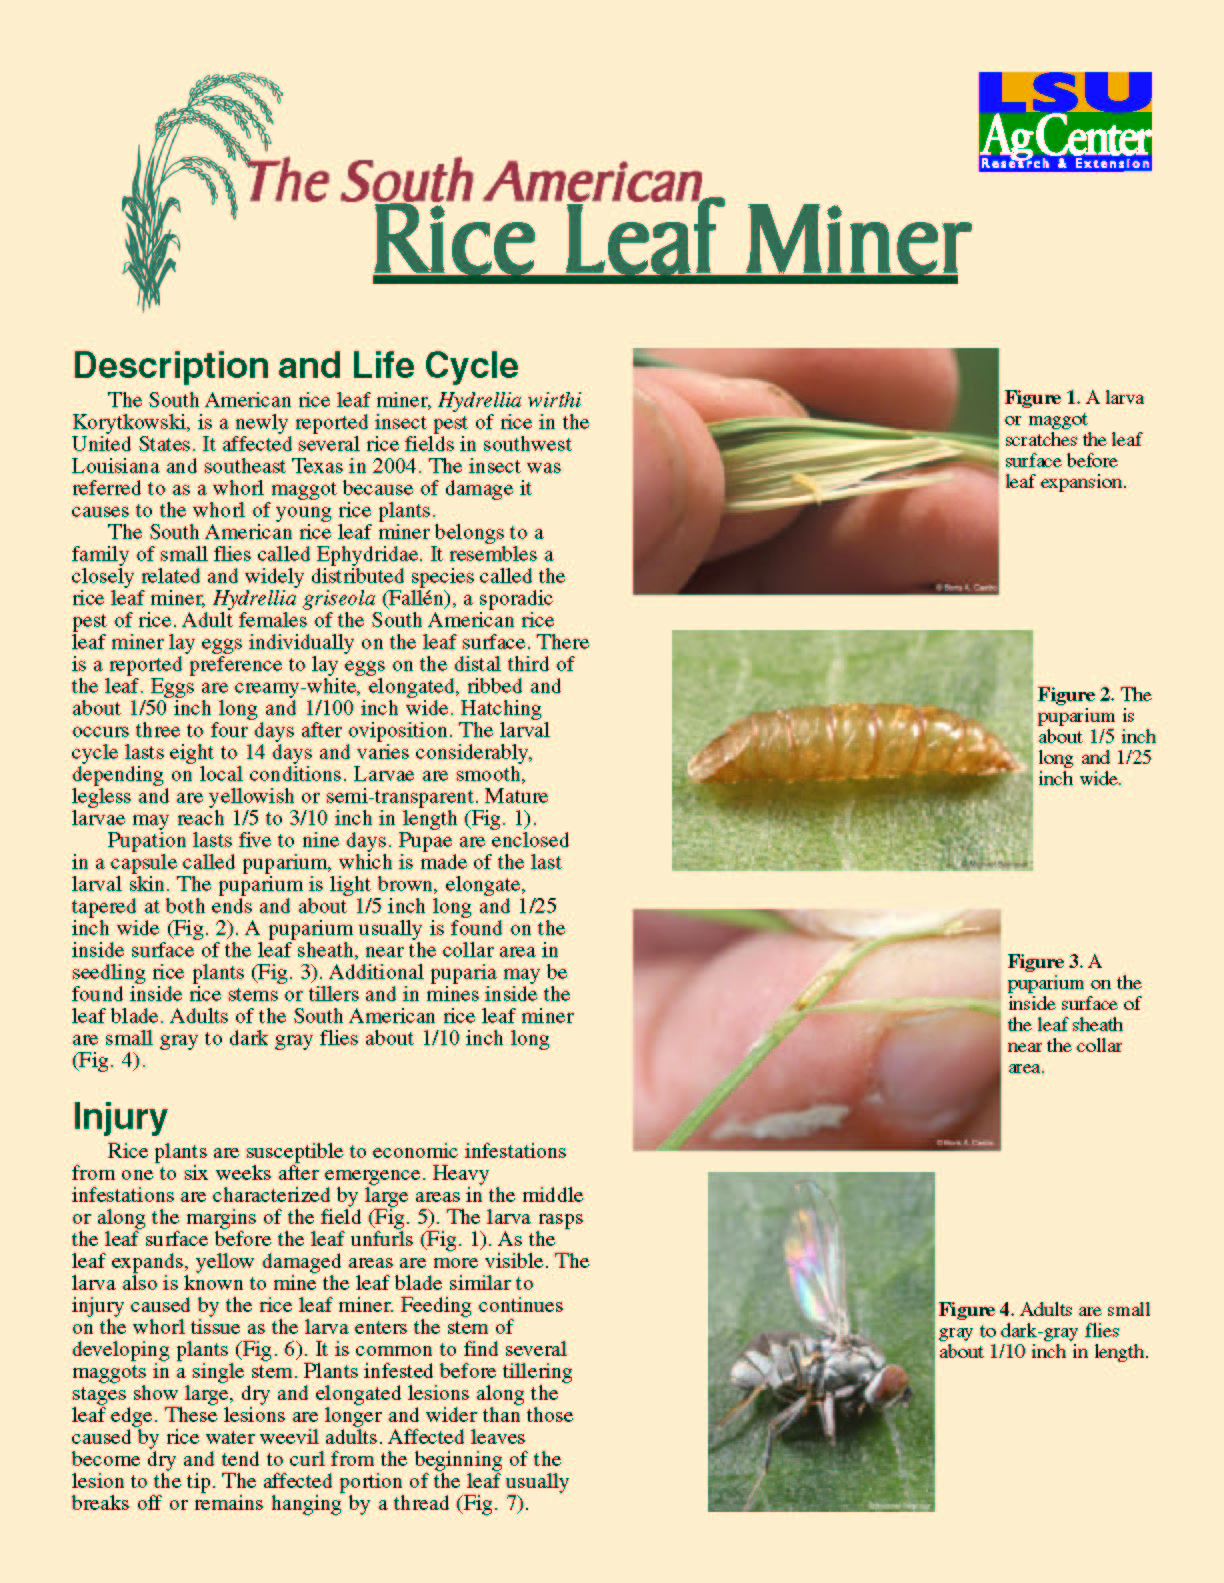 The South American Rice Leaf Miner